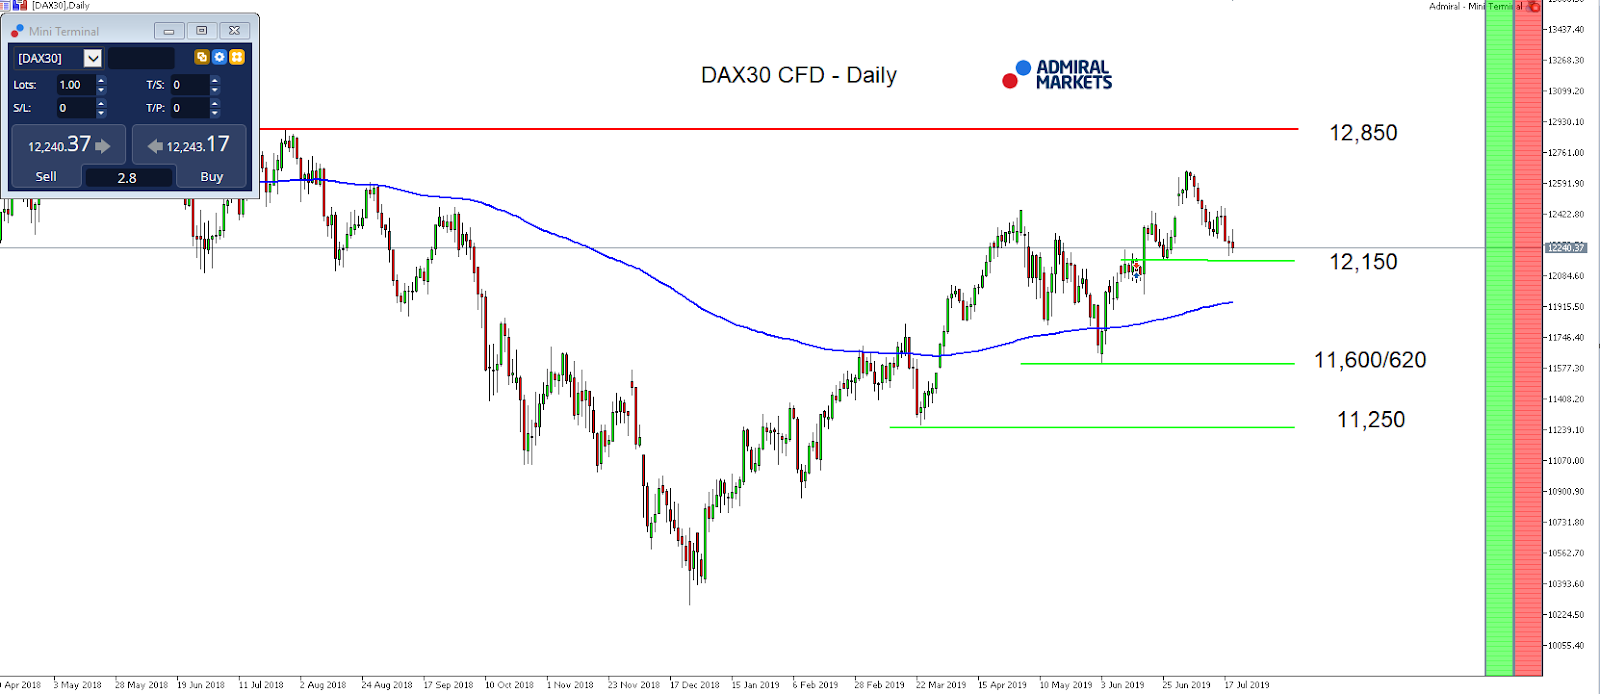 DAX30 CFD attacking trend-support at 12,200 – will it hold